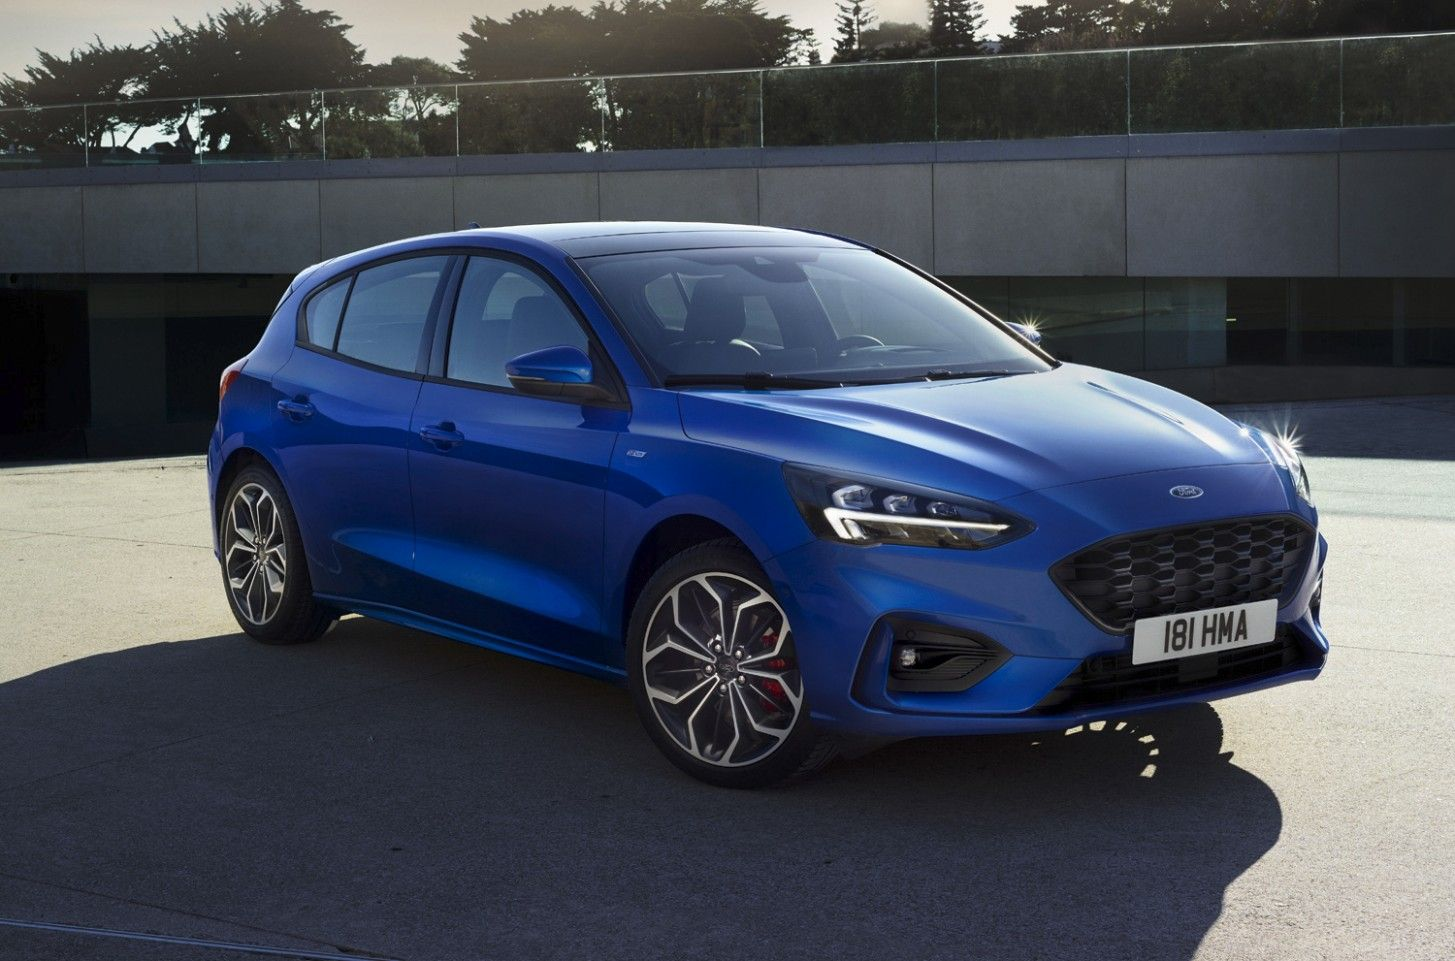 2020 Ford Focus Rs St Spy Shoot Ford Focus Ford Focus St Ford Focus Rs